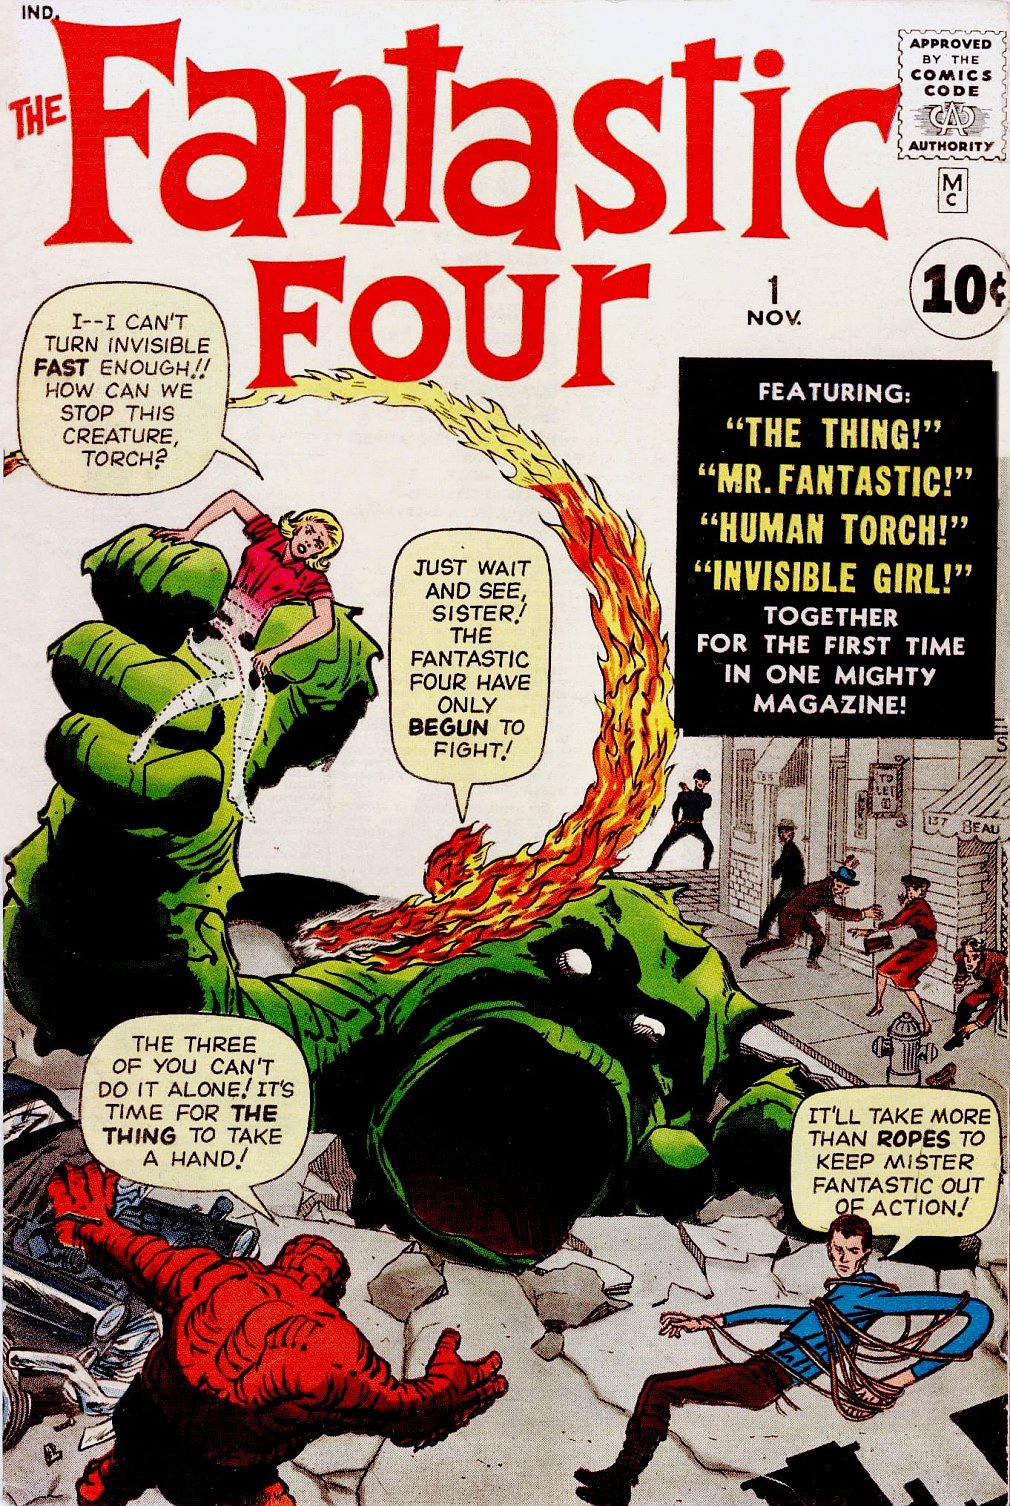 Stan Lee & Jack Kirby's  Fantastic Four  No. 1 hit newsstands on Aug. 8, 1961.